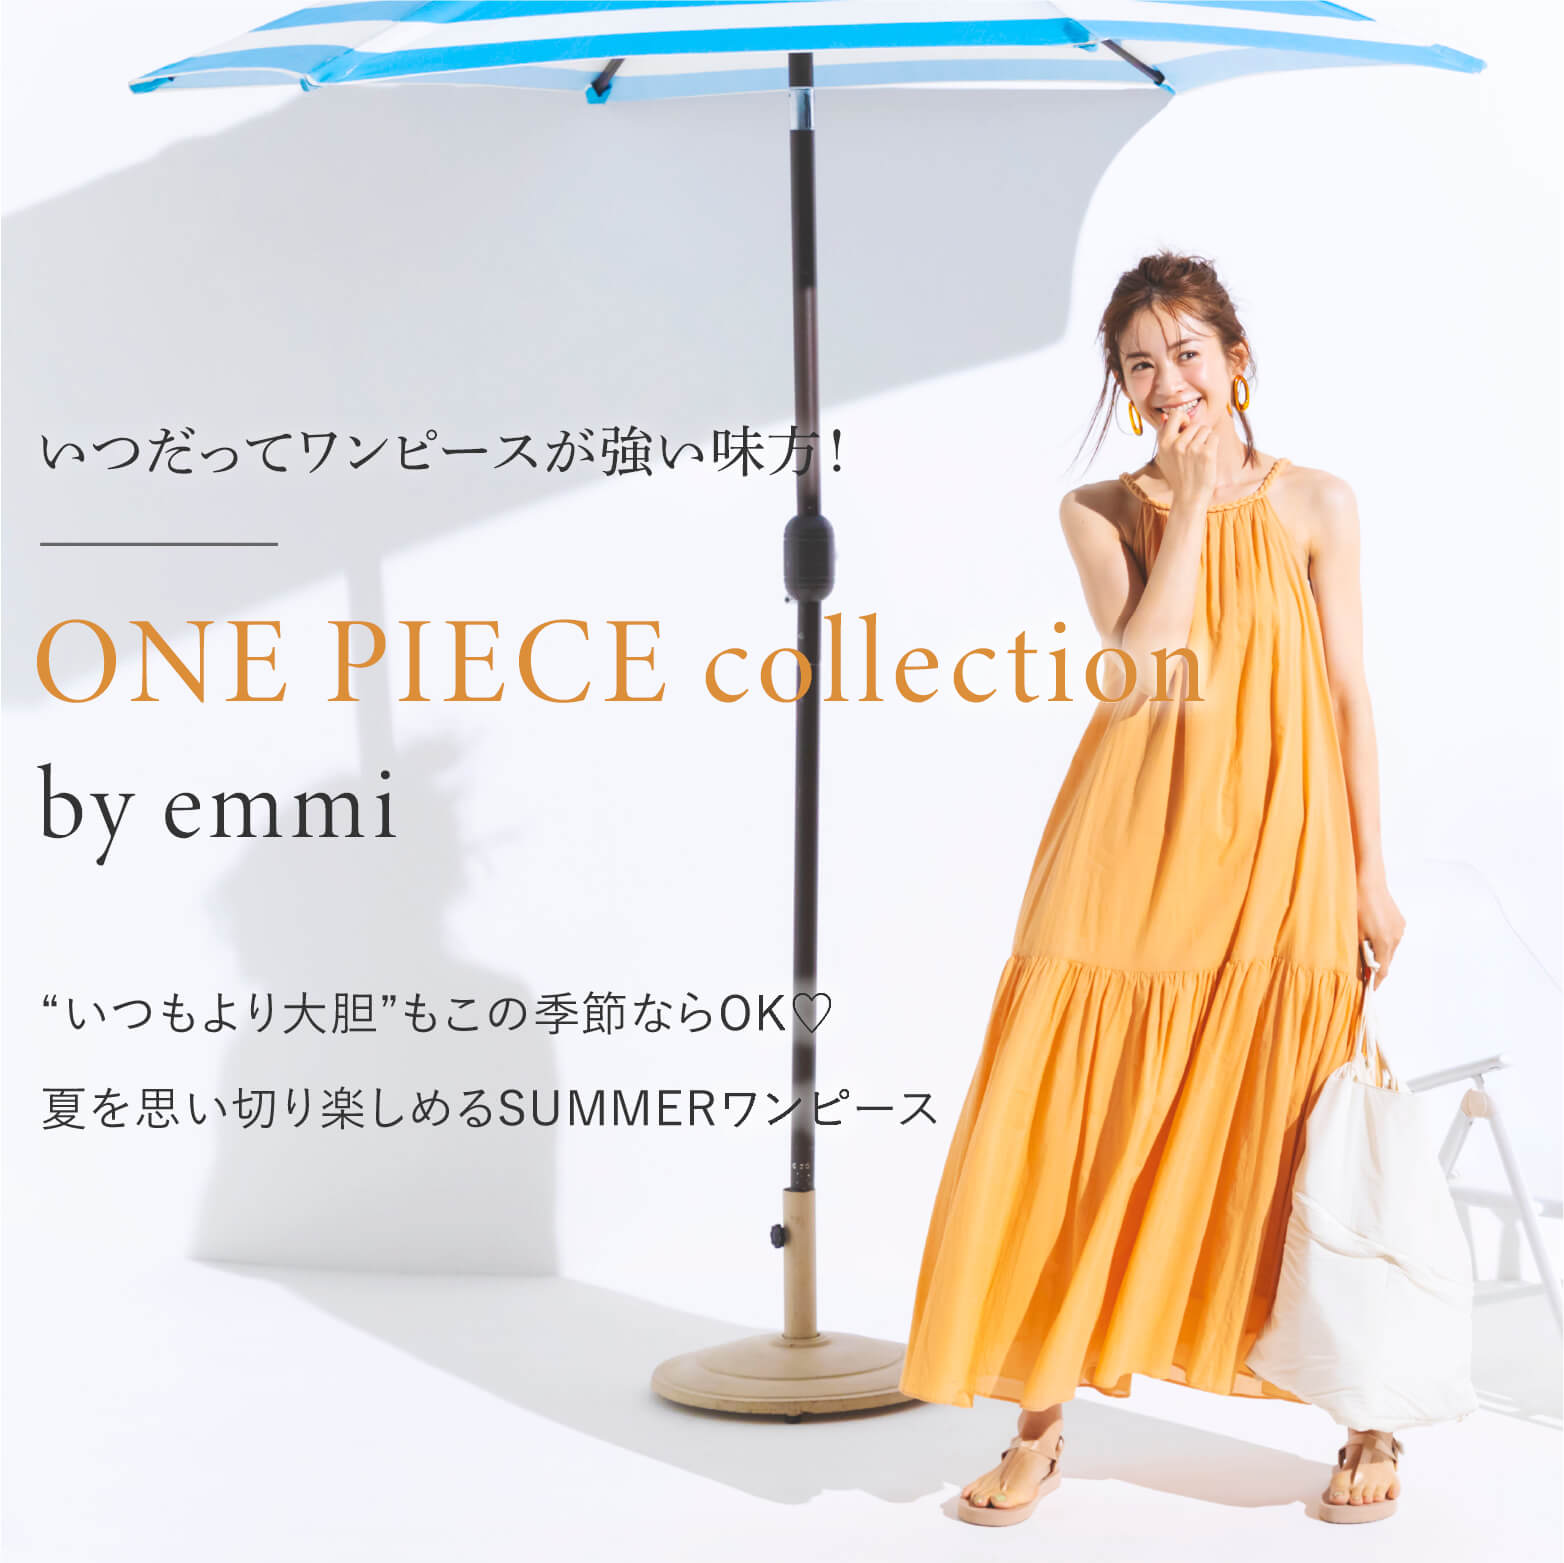 ONE PIECE collection by emmi